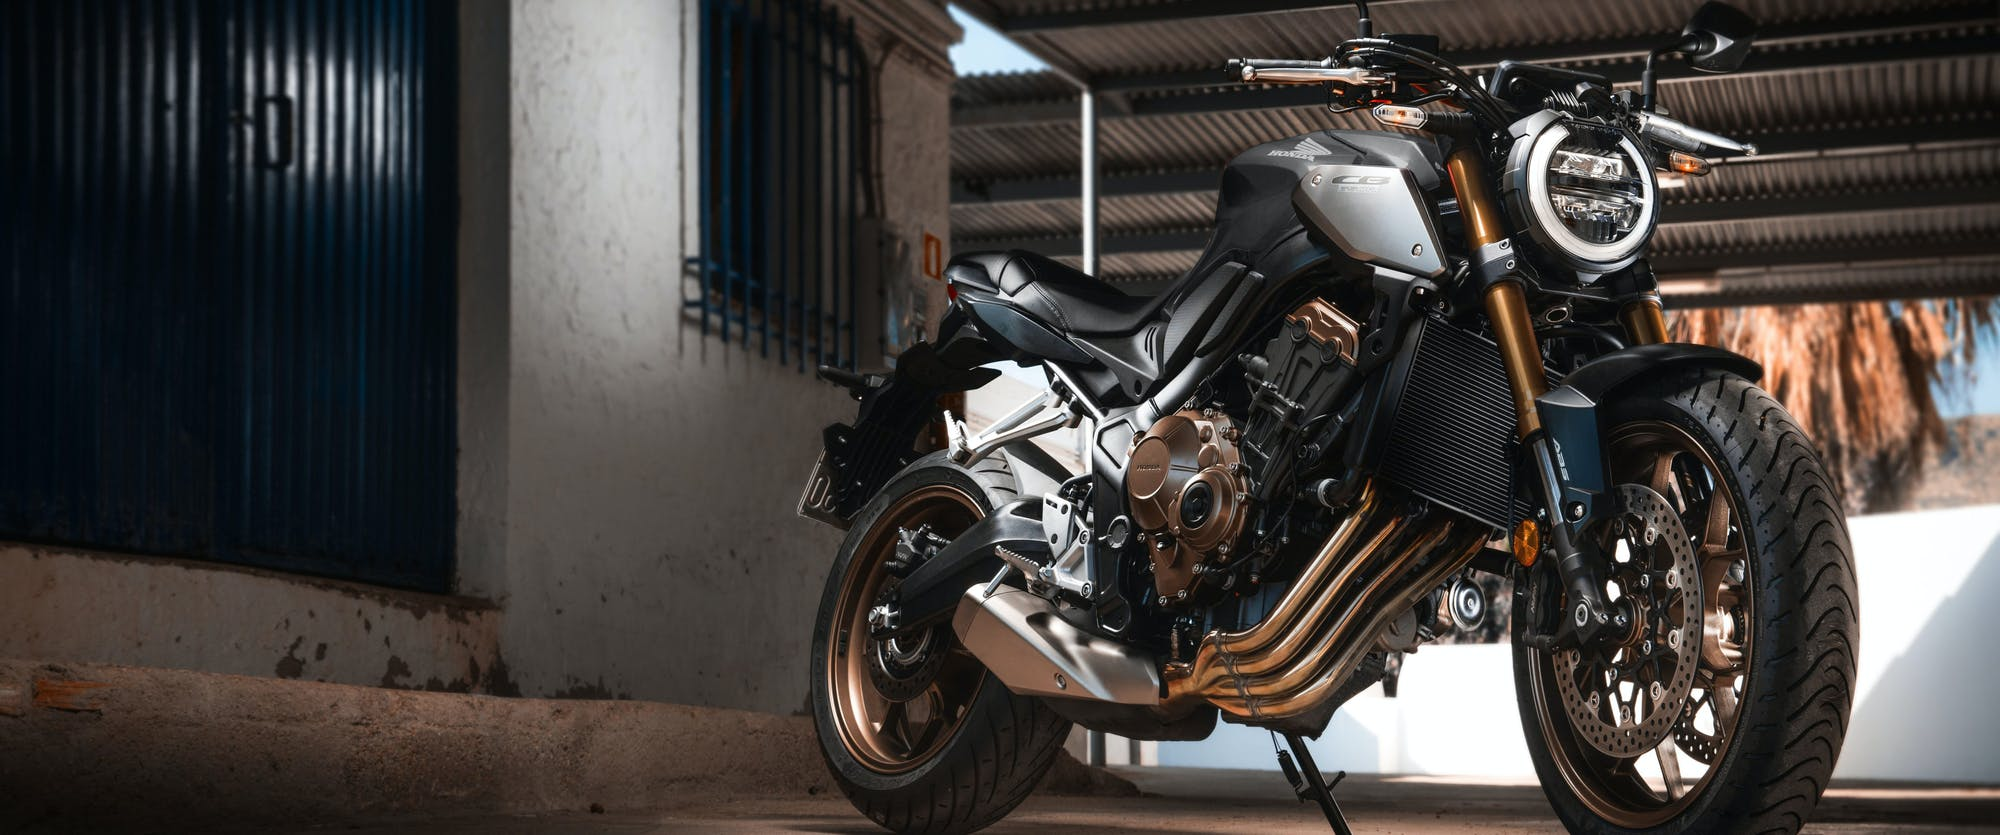 Honda CB650R in pearl smoke grey colour, parked